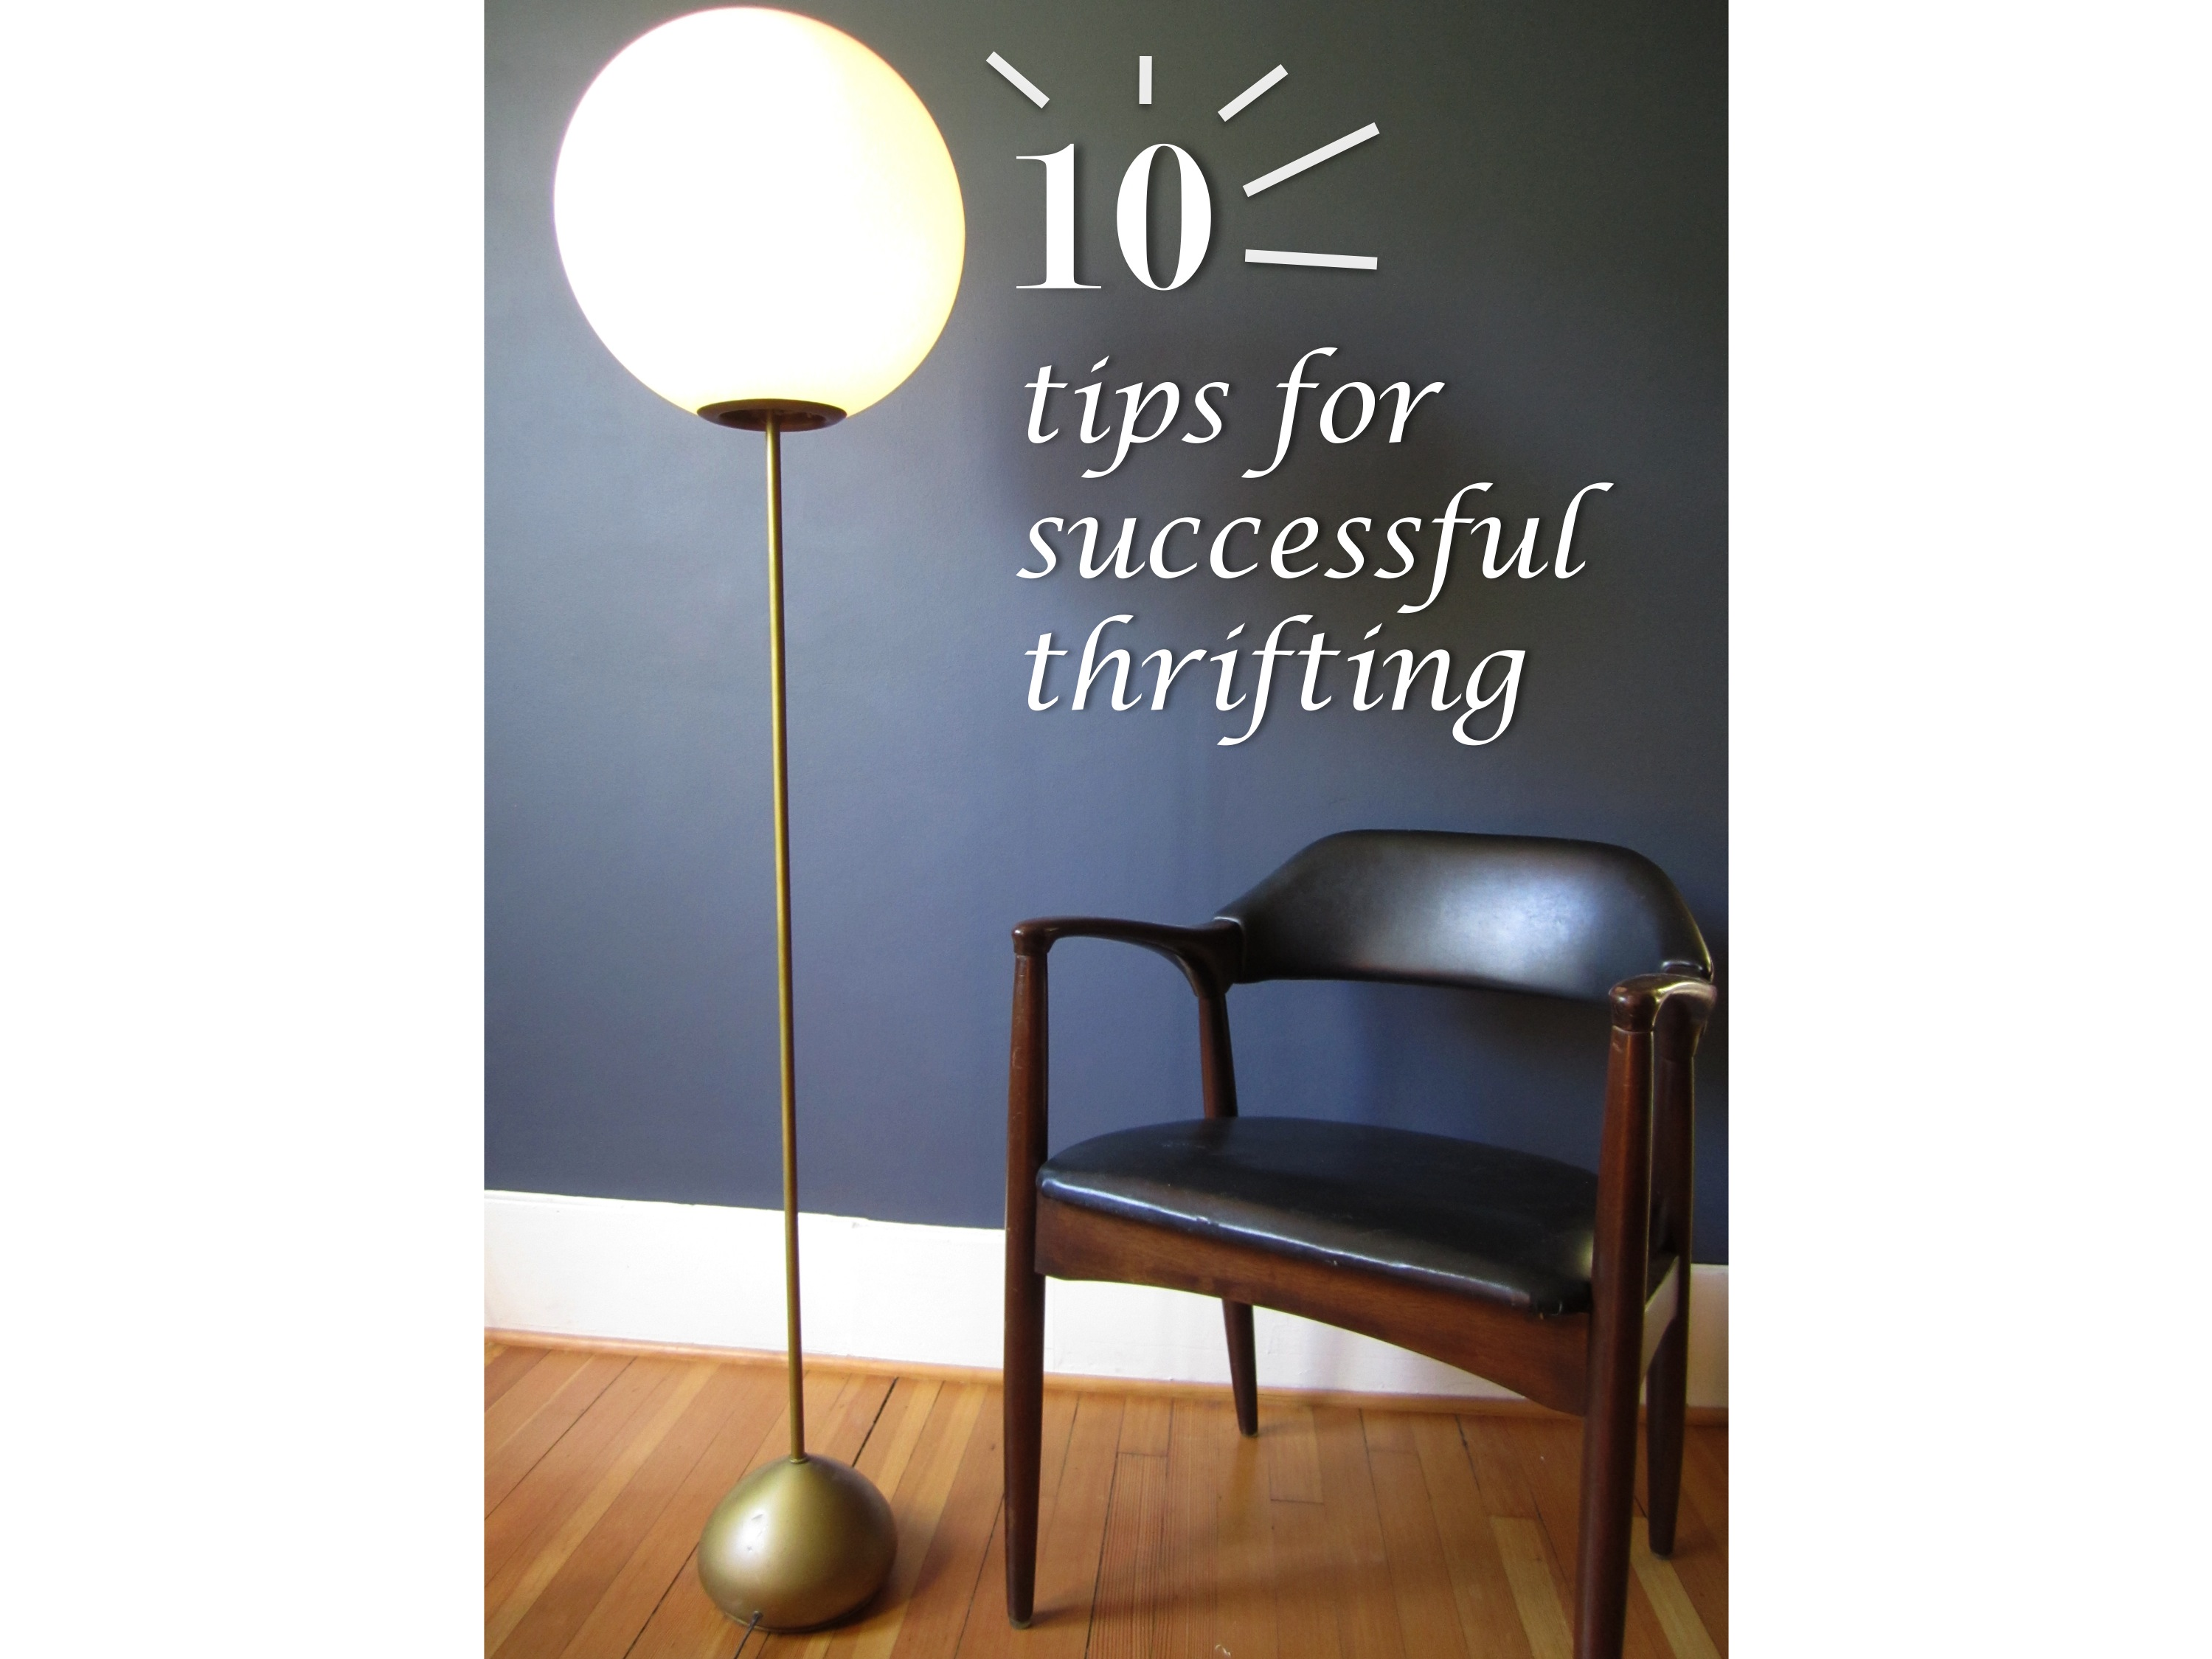 10 tips for successful thrifting